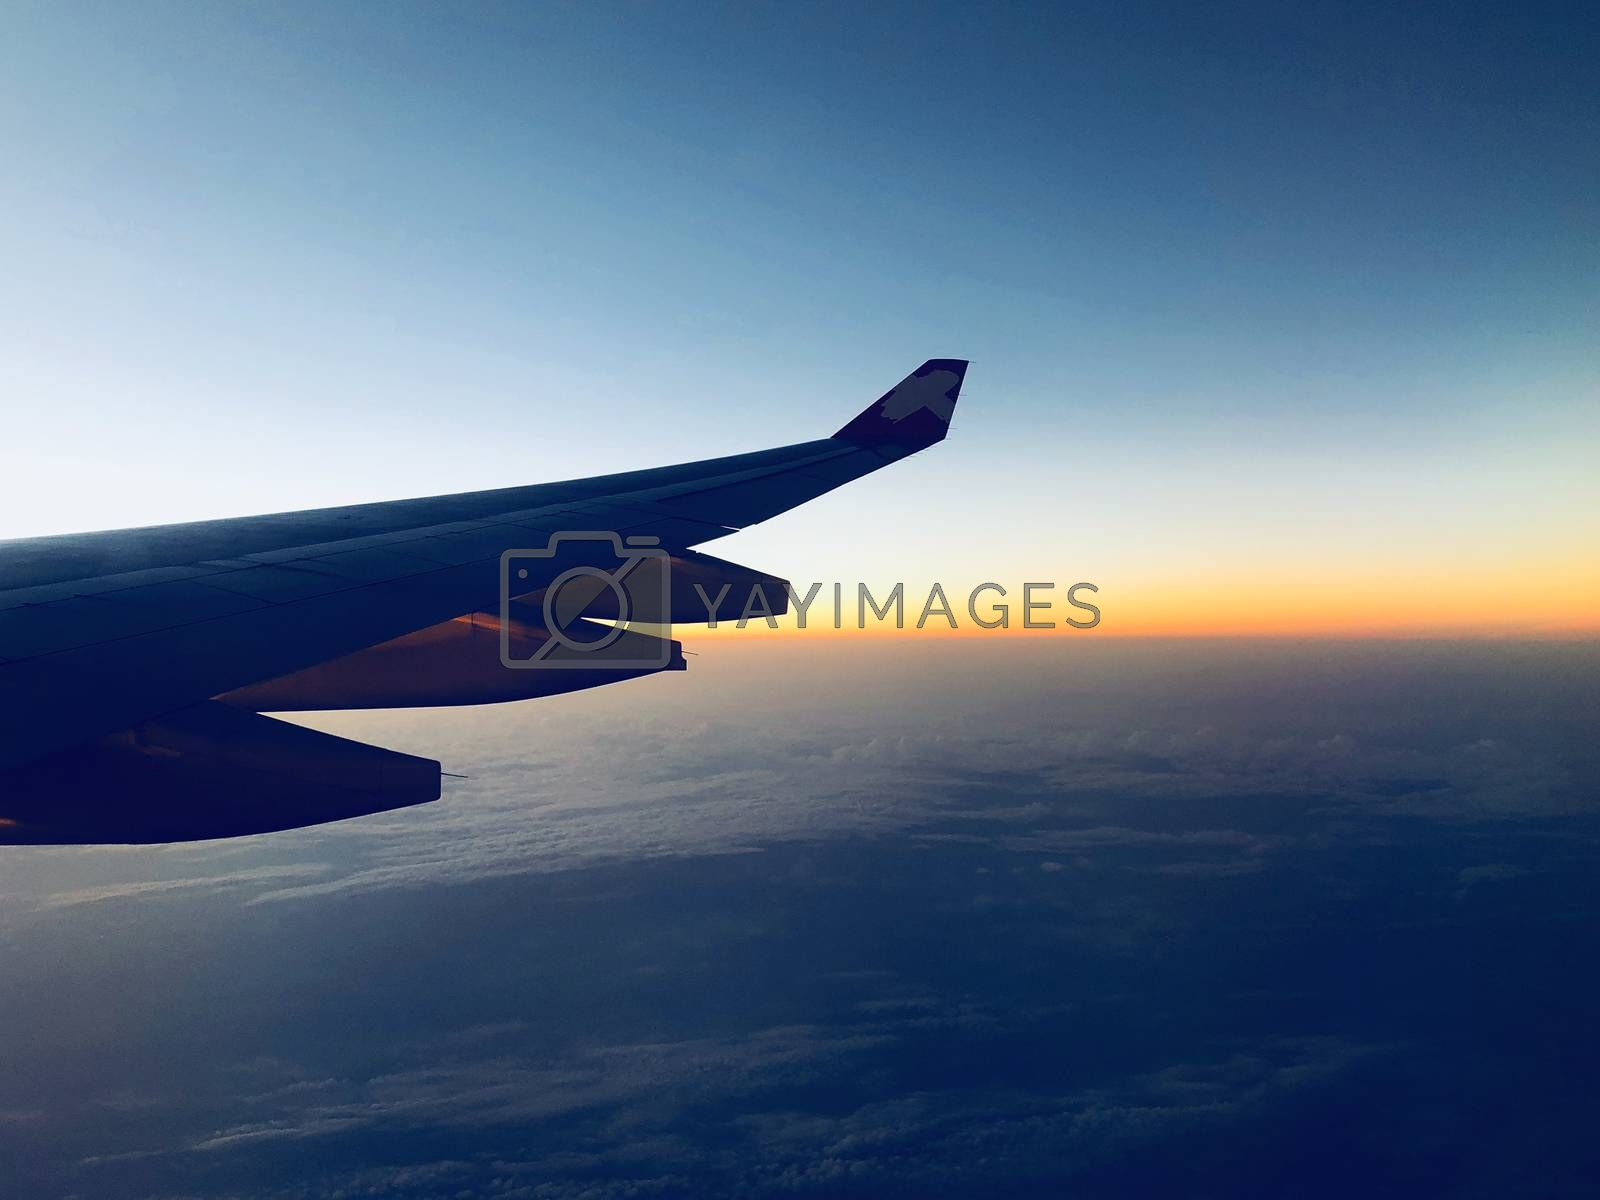 Sunrise on twilight sky, amazing view from the window plane.